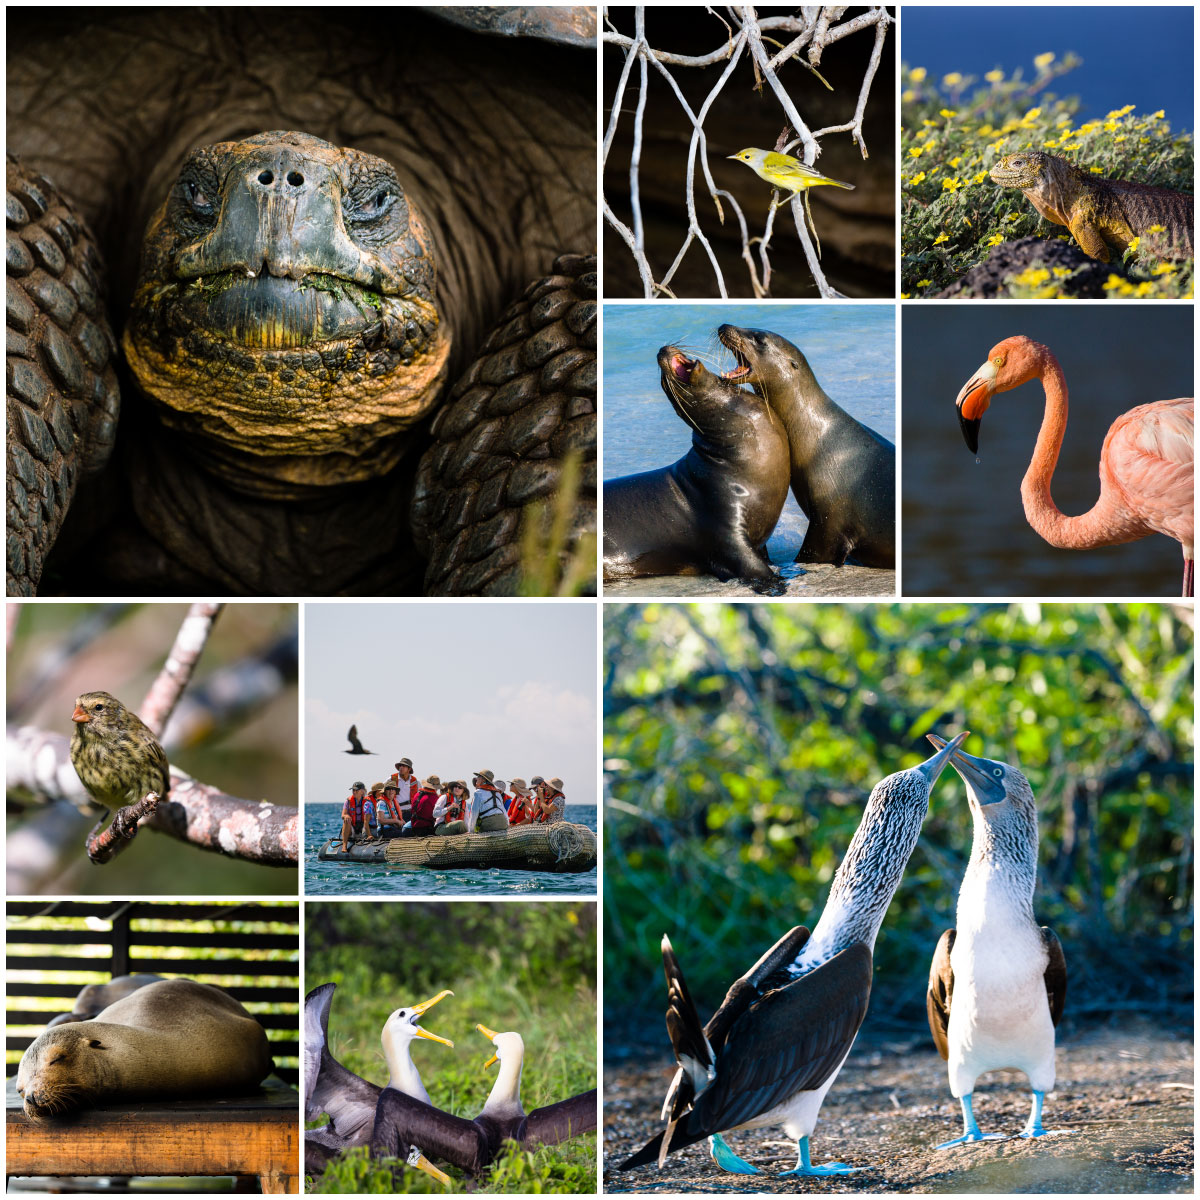 Images of galapagos wildlife including tortoise, flamingo, and blue-footed boobies